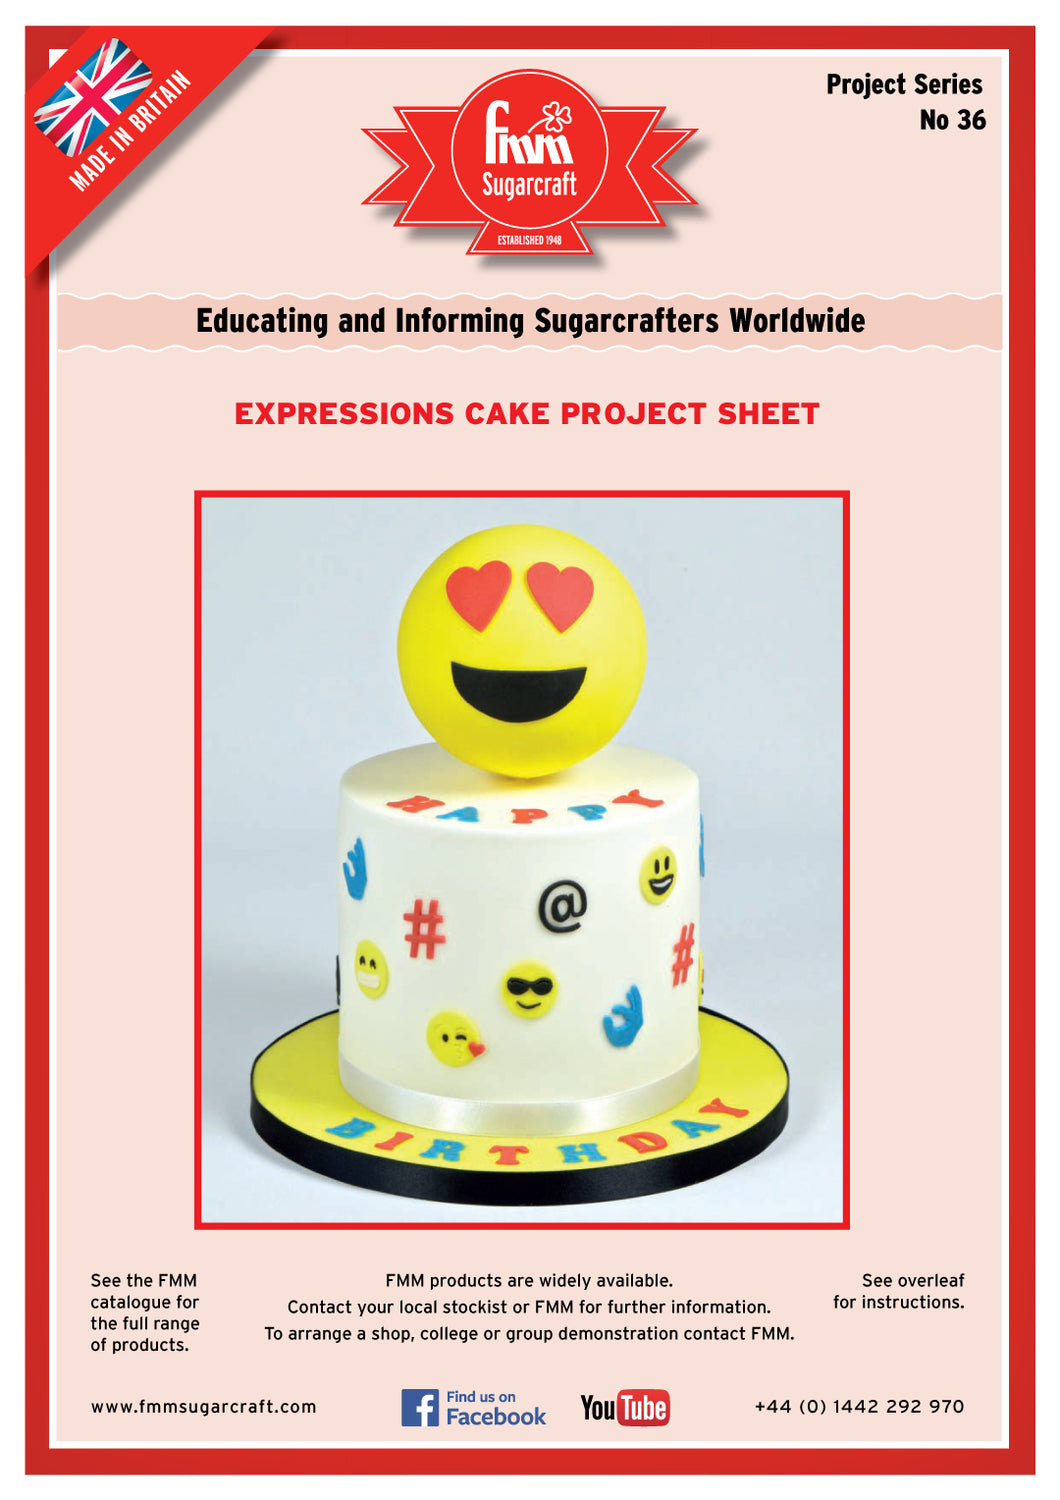 FMM Expressions Cake Project Sheet